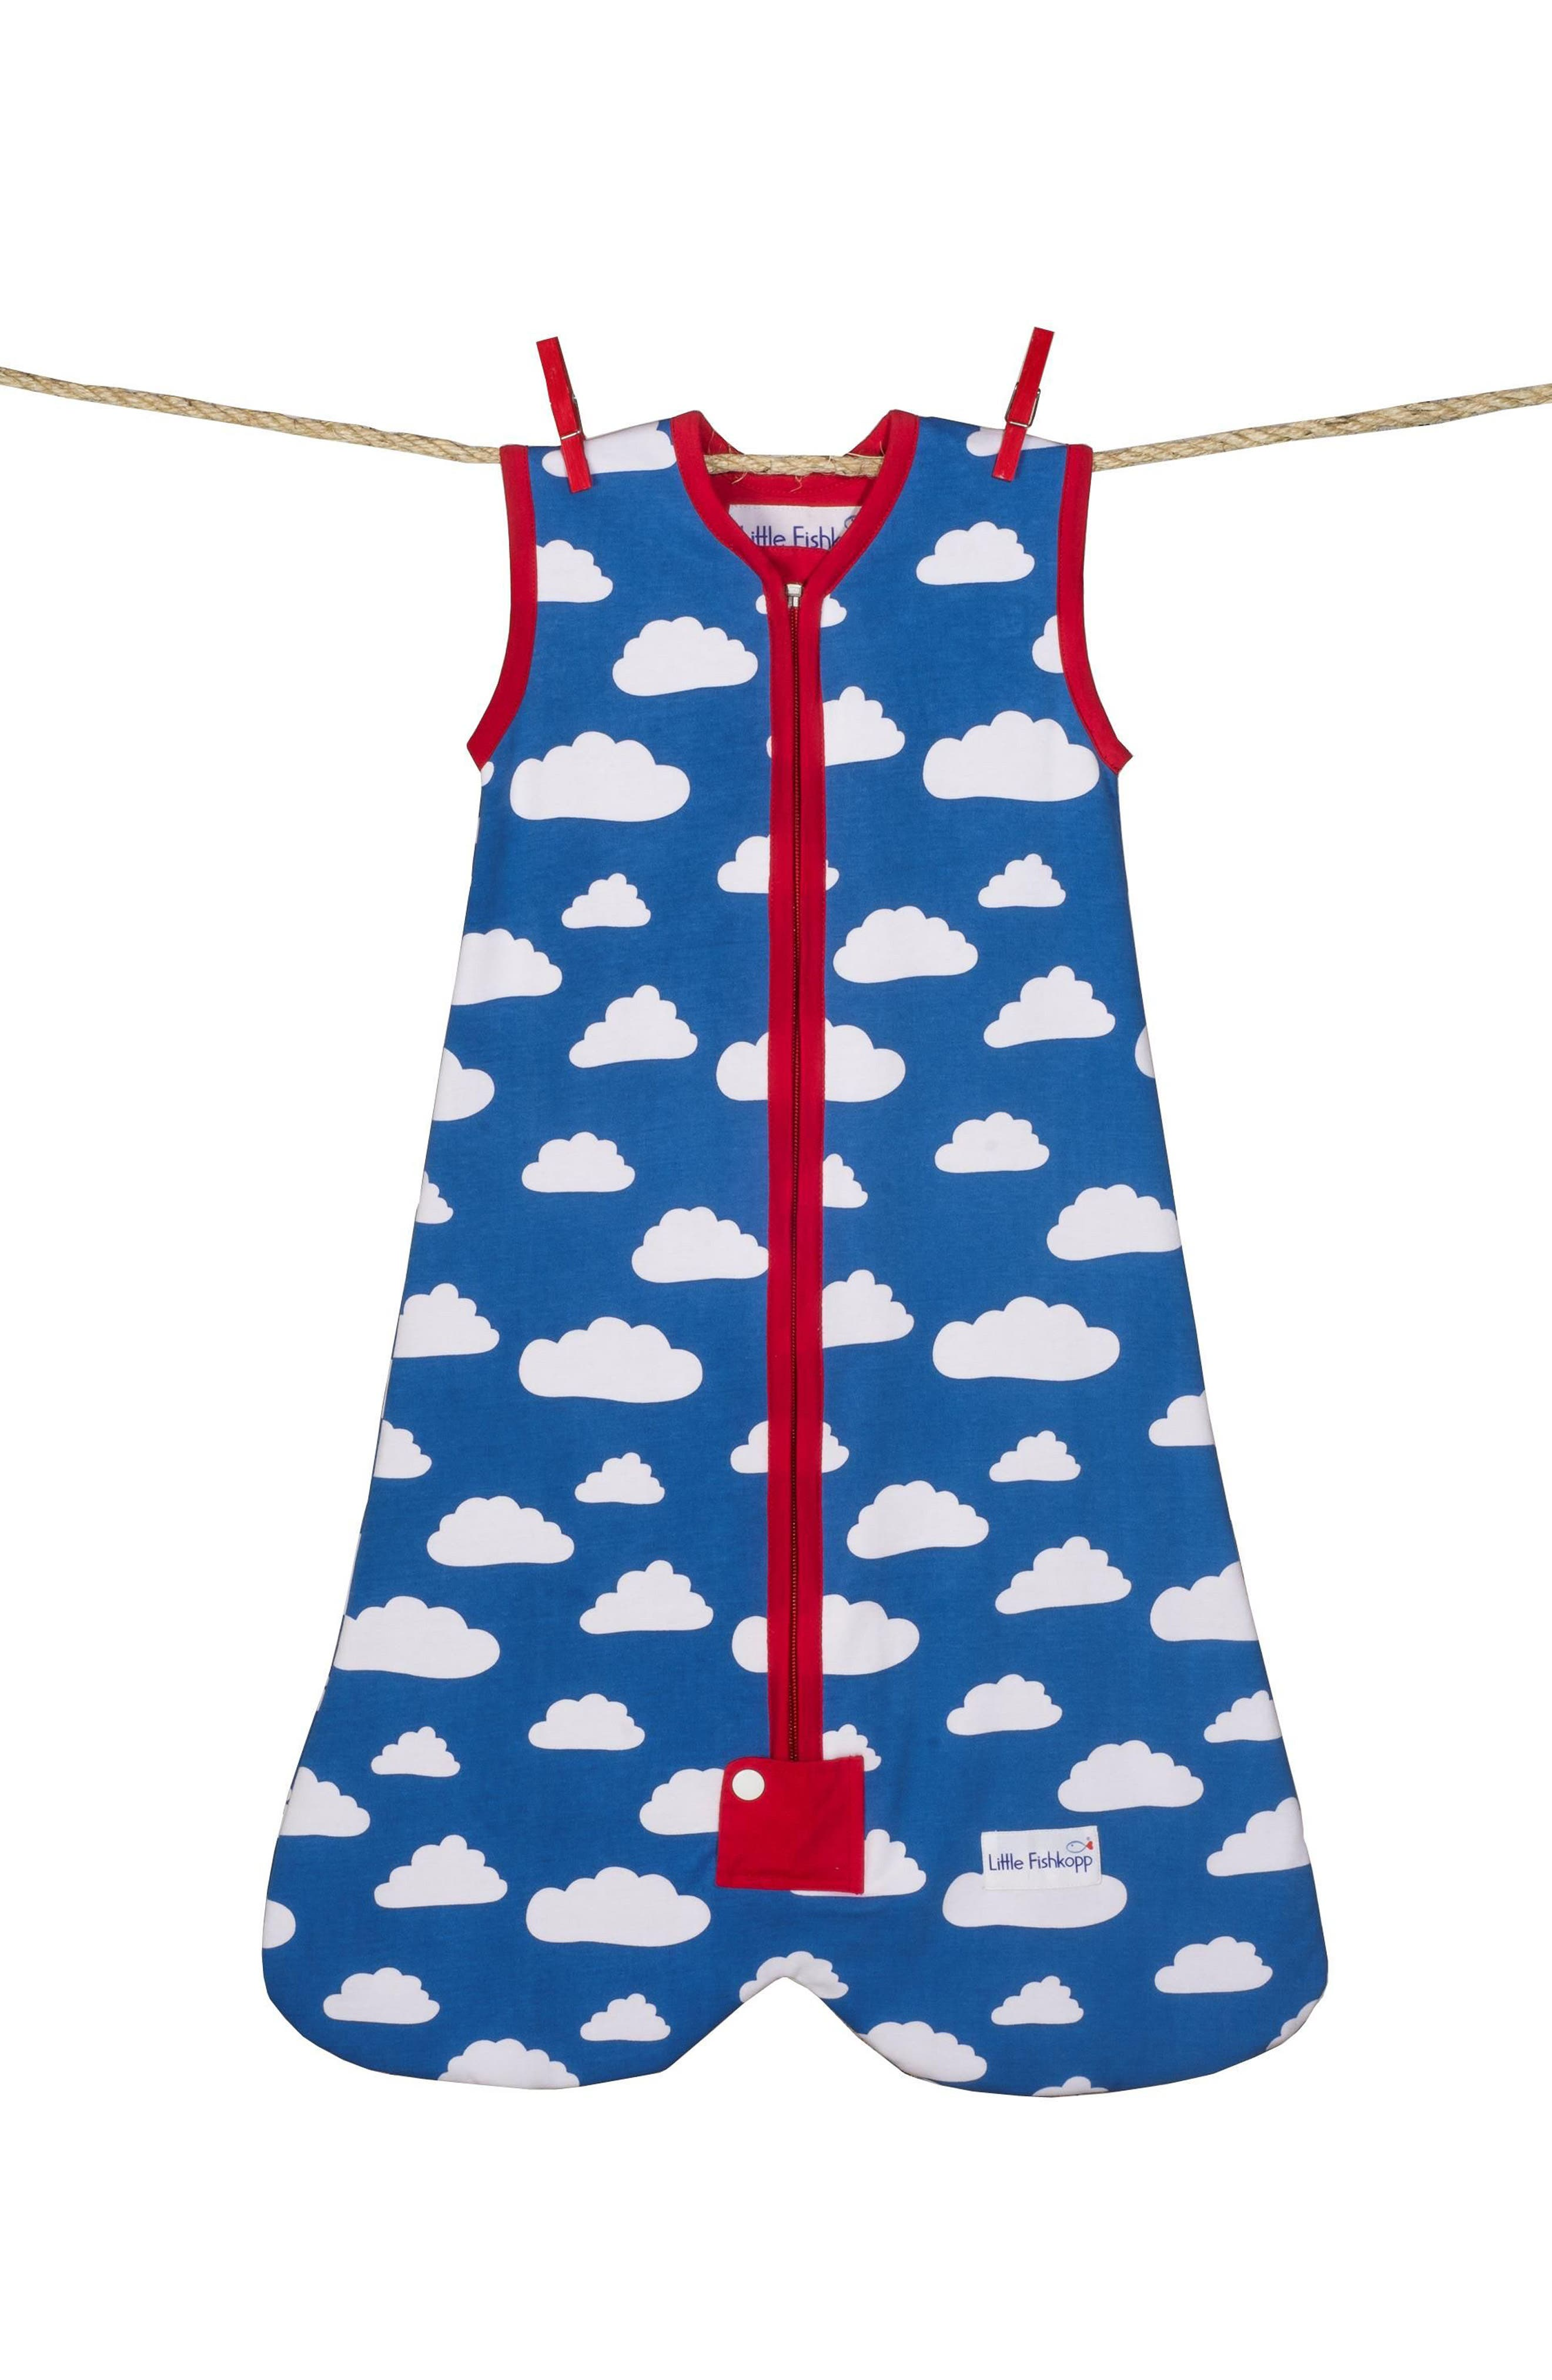 Alternate Image 1 Selected - Little Fishkopp Clouds Organic Cotton Wearable Blanket (Baby)